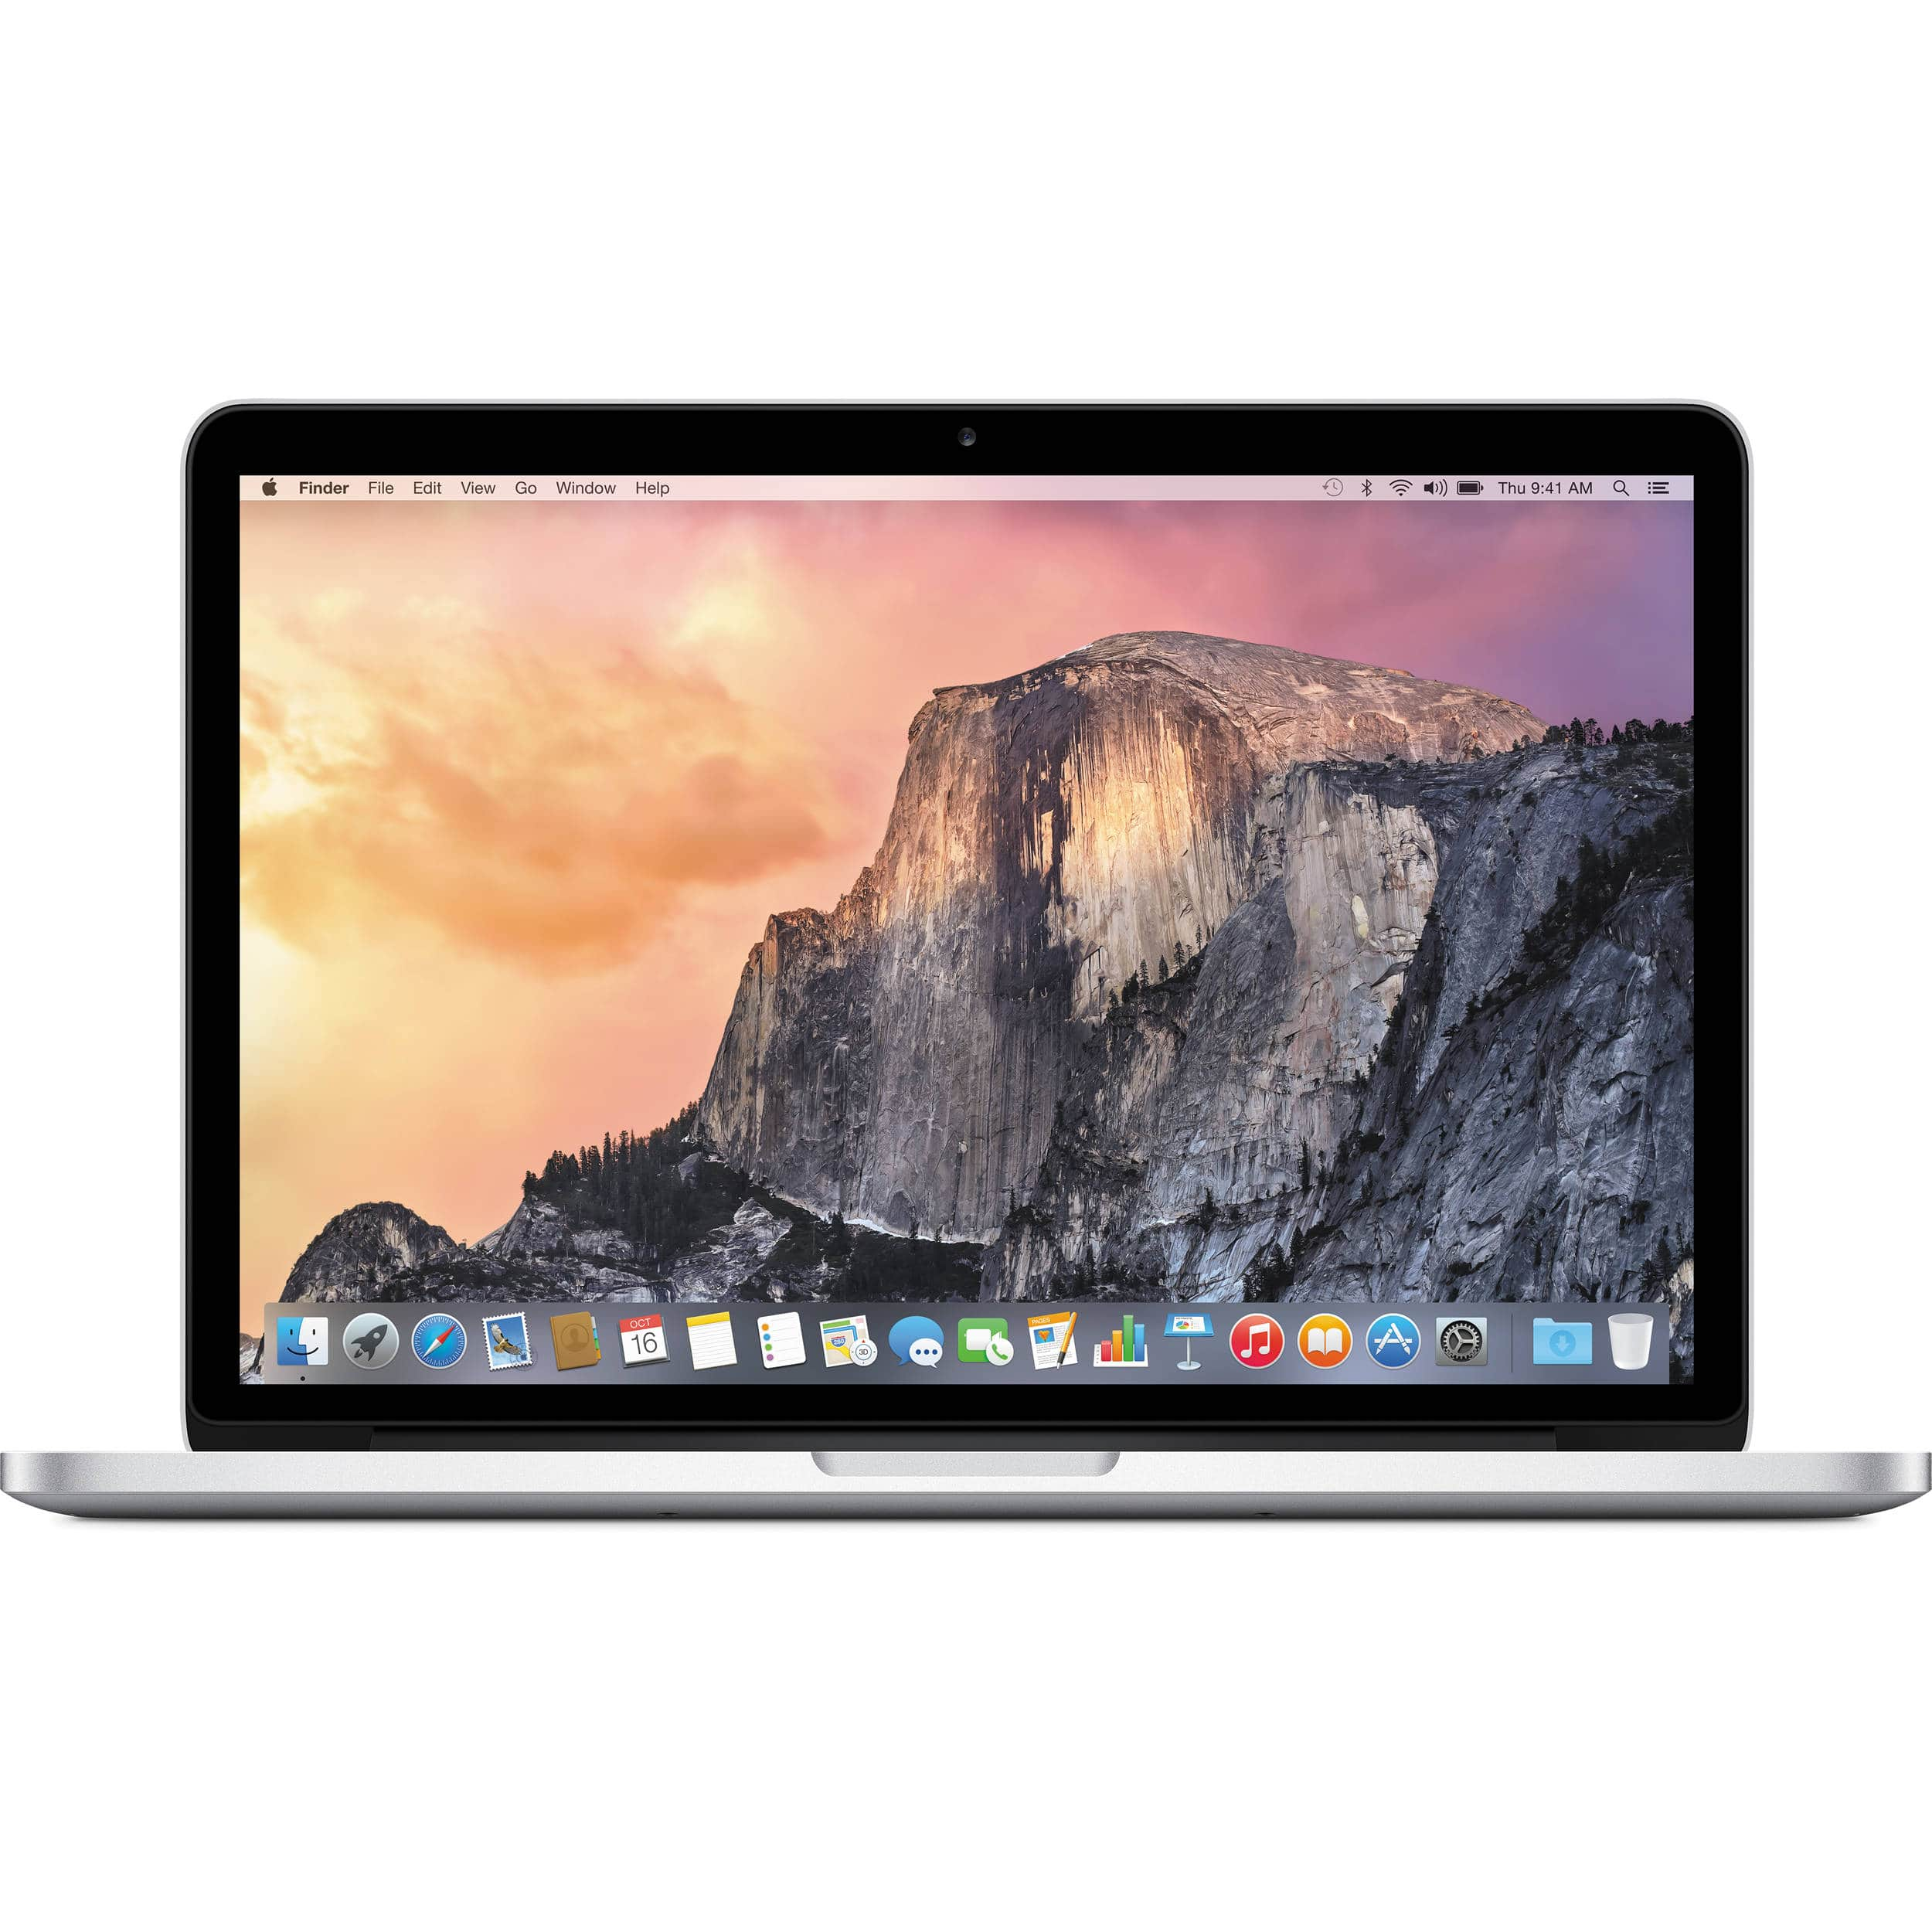 MacBook Pro early 2015 model 128 GB 8 GB $989 or less plus tax